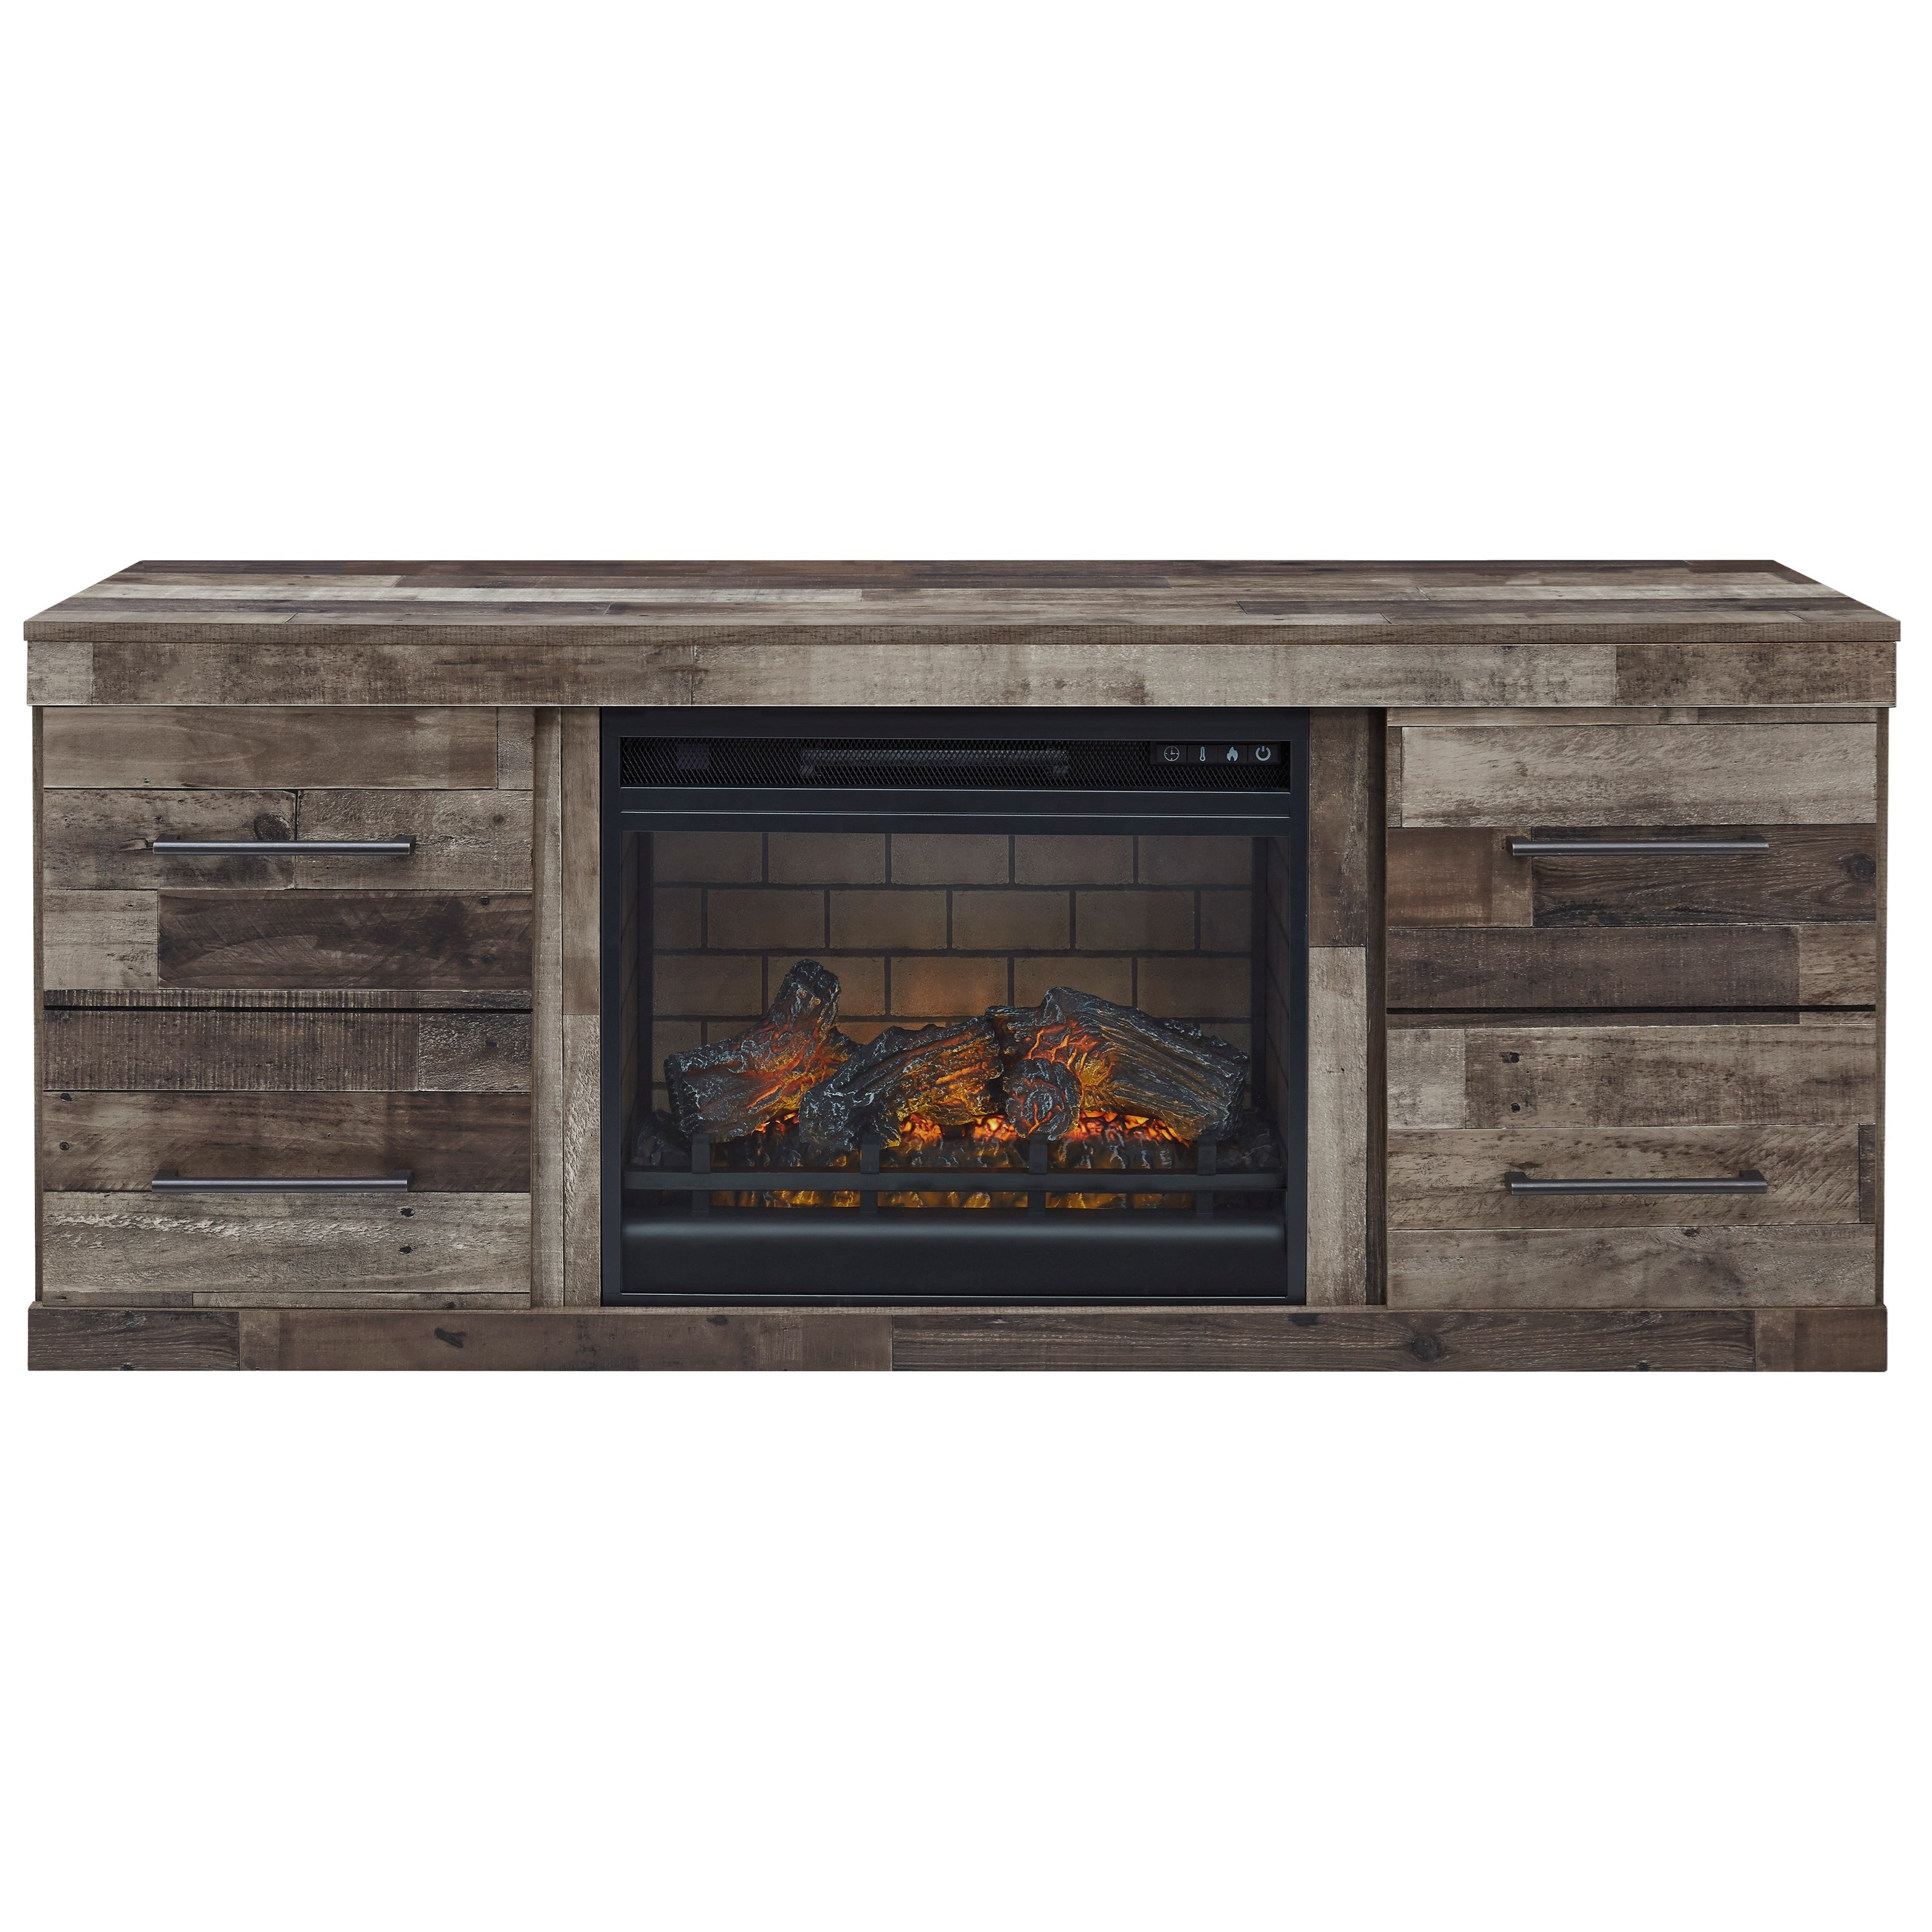 Derekson Fireplace Console by Signature Design by Ashley at Standard Furniture